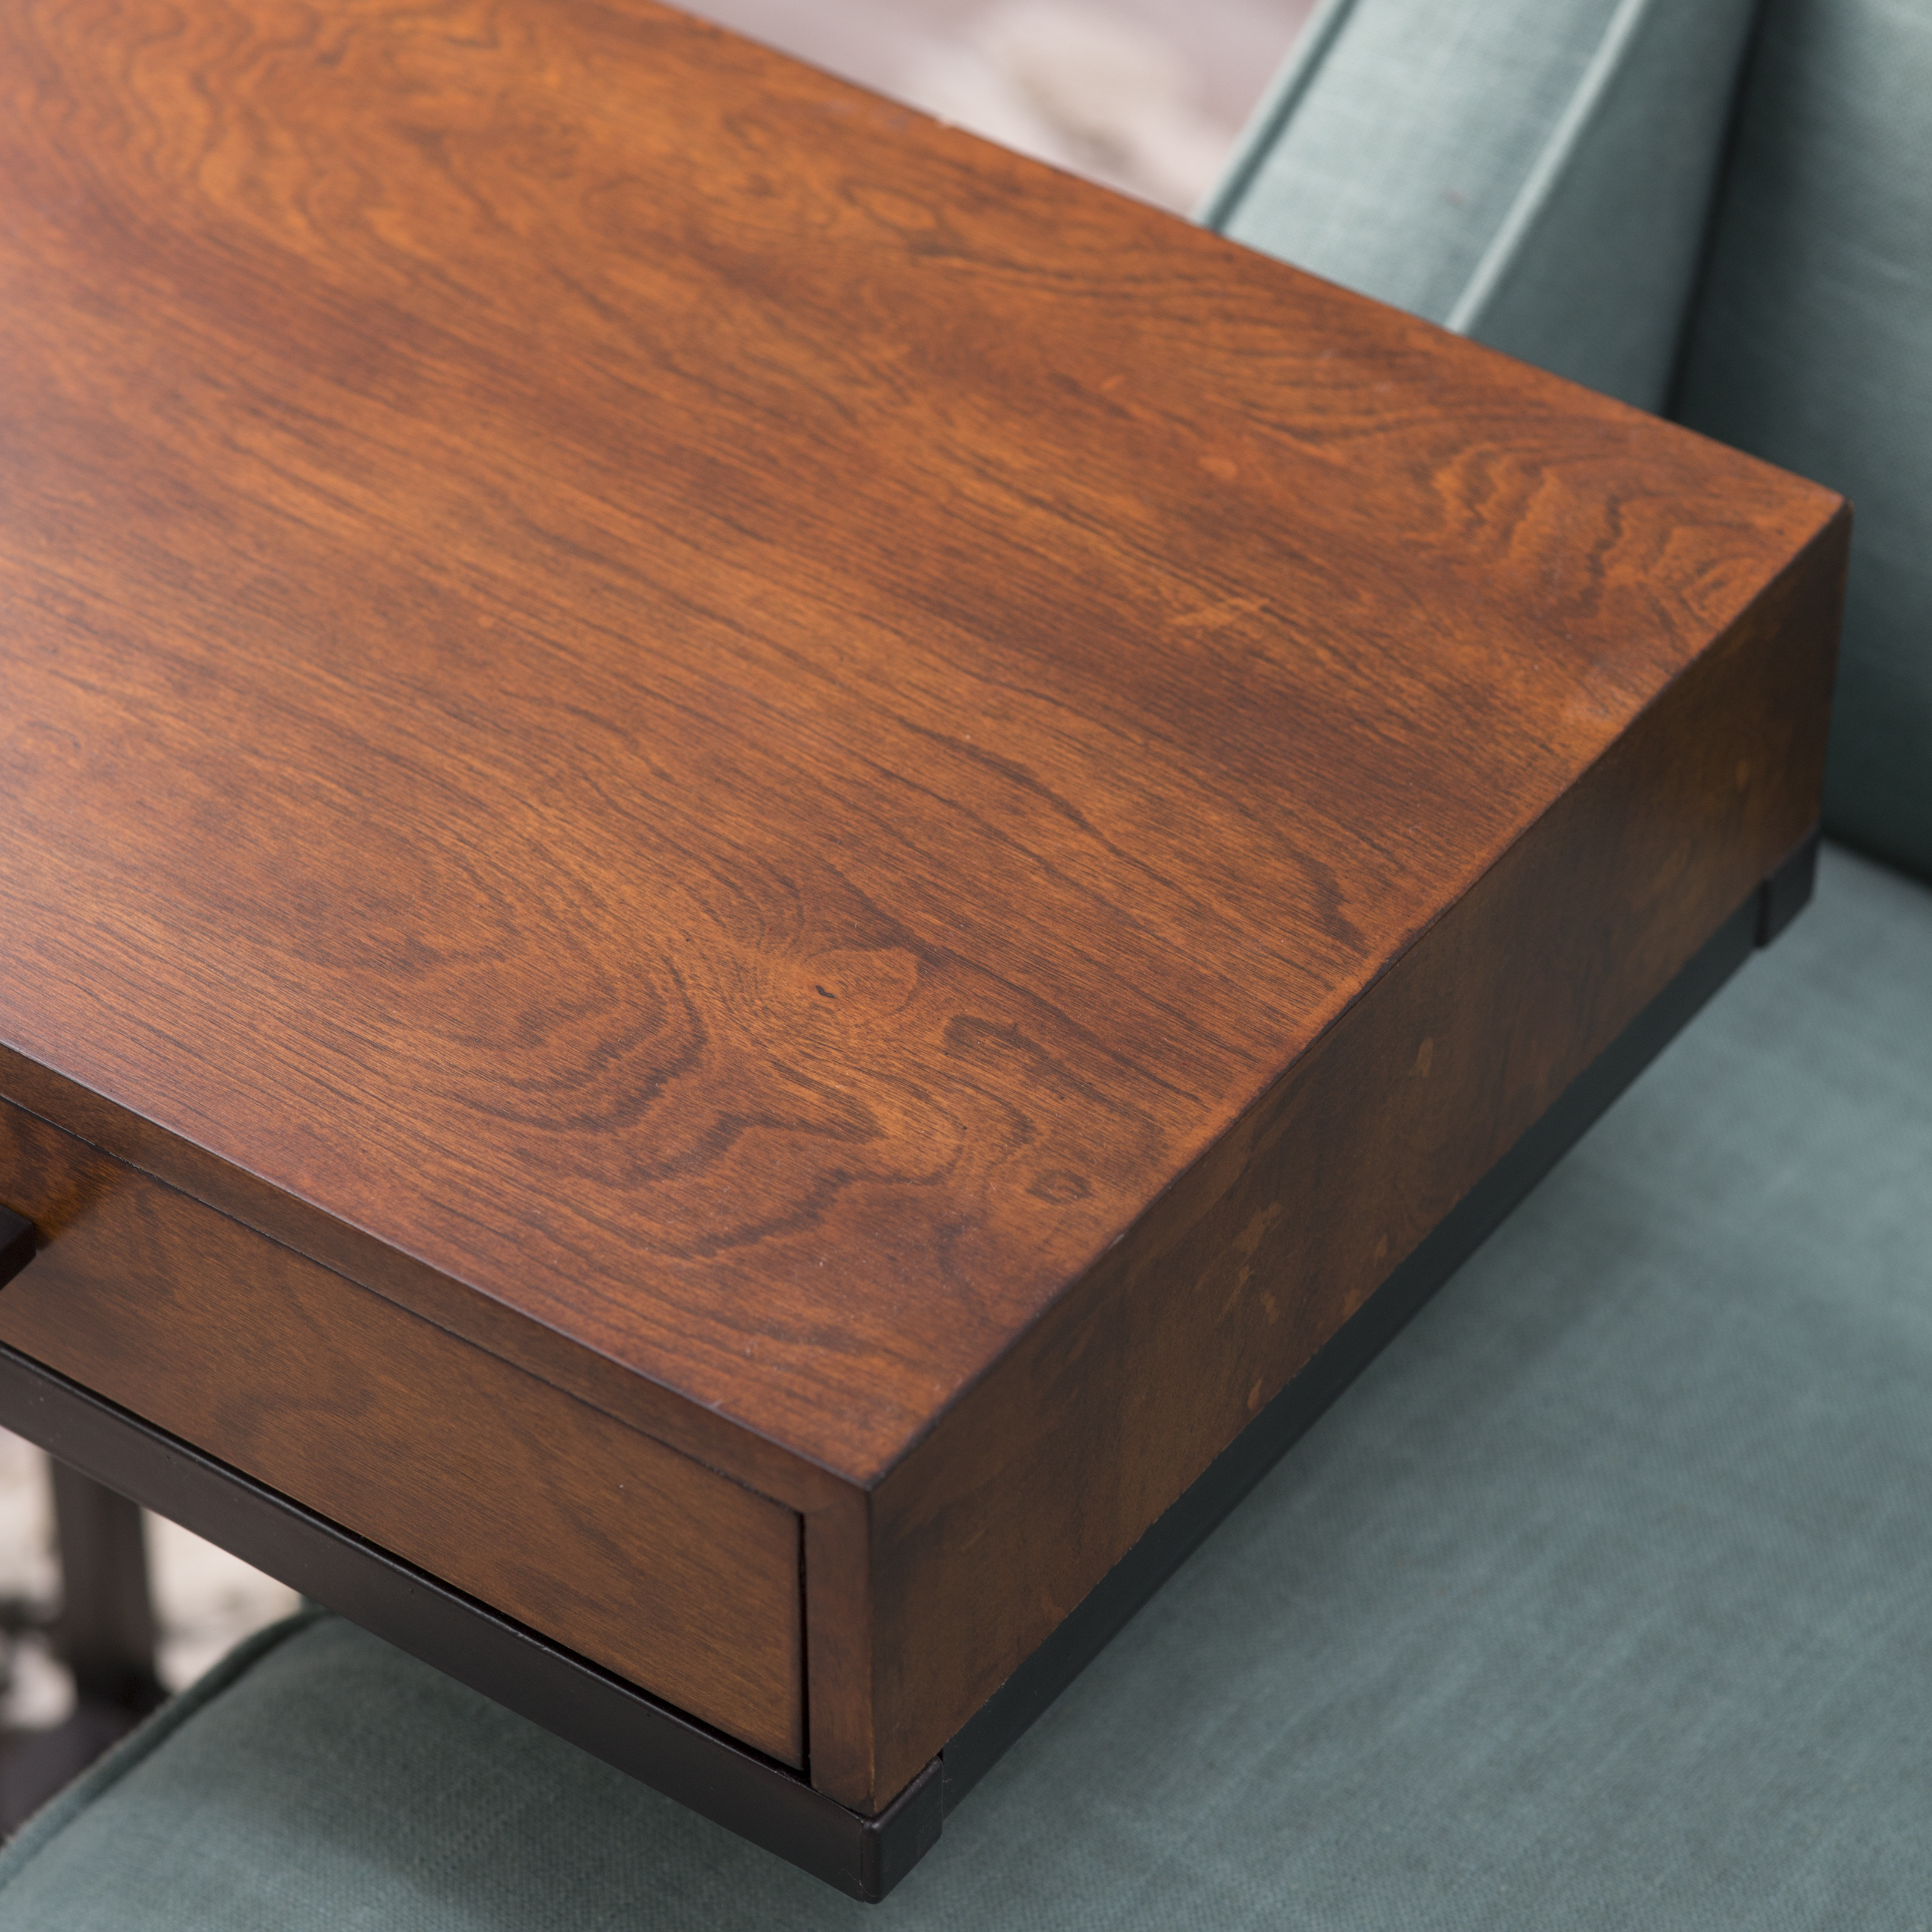 Superb QUICK VIEW. Drake C Table With Drawer. $89.99